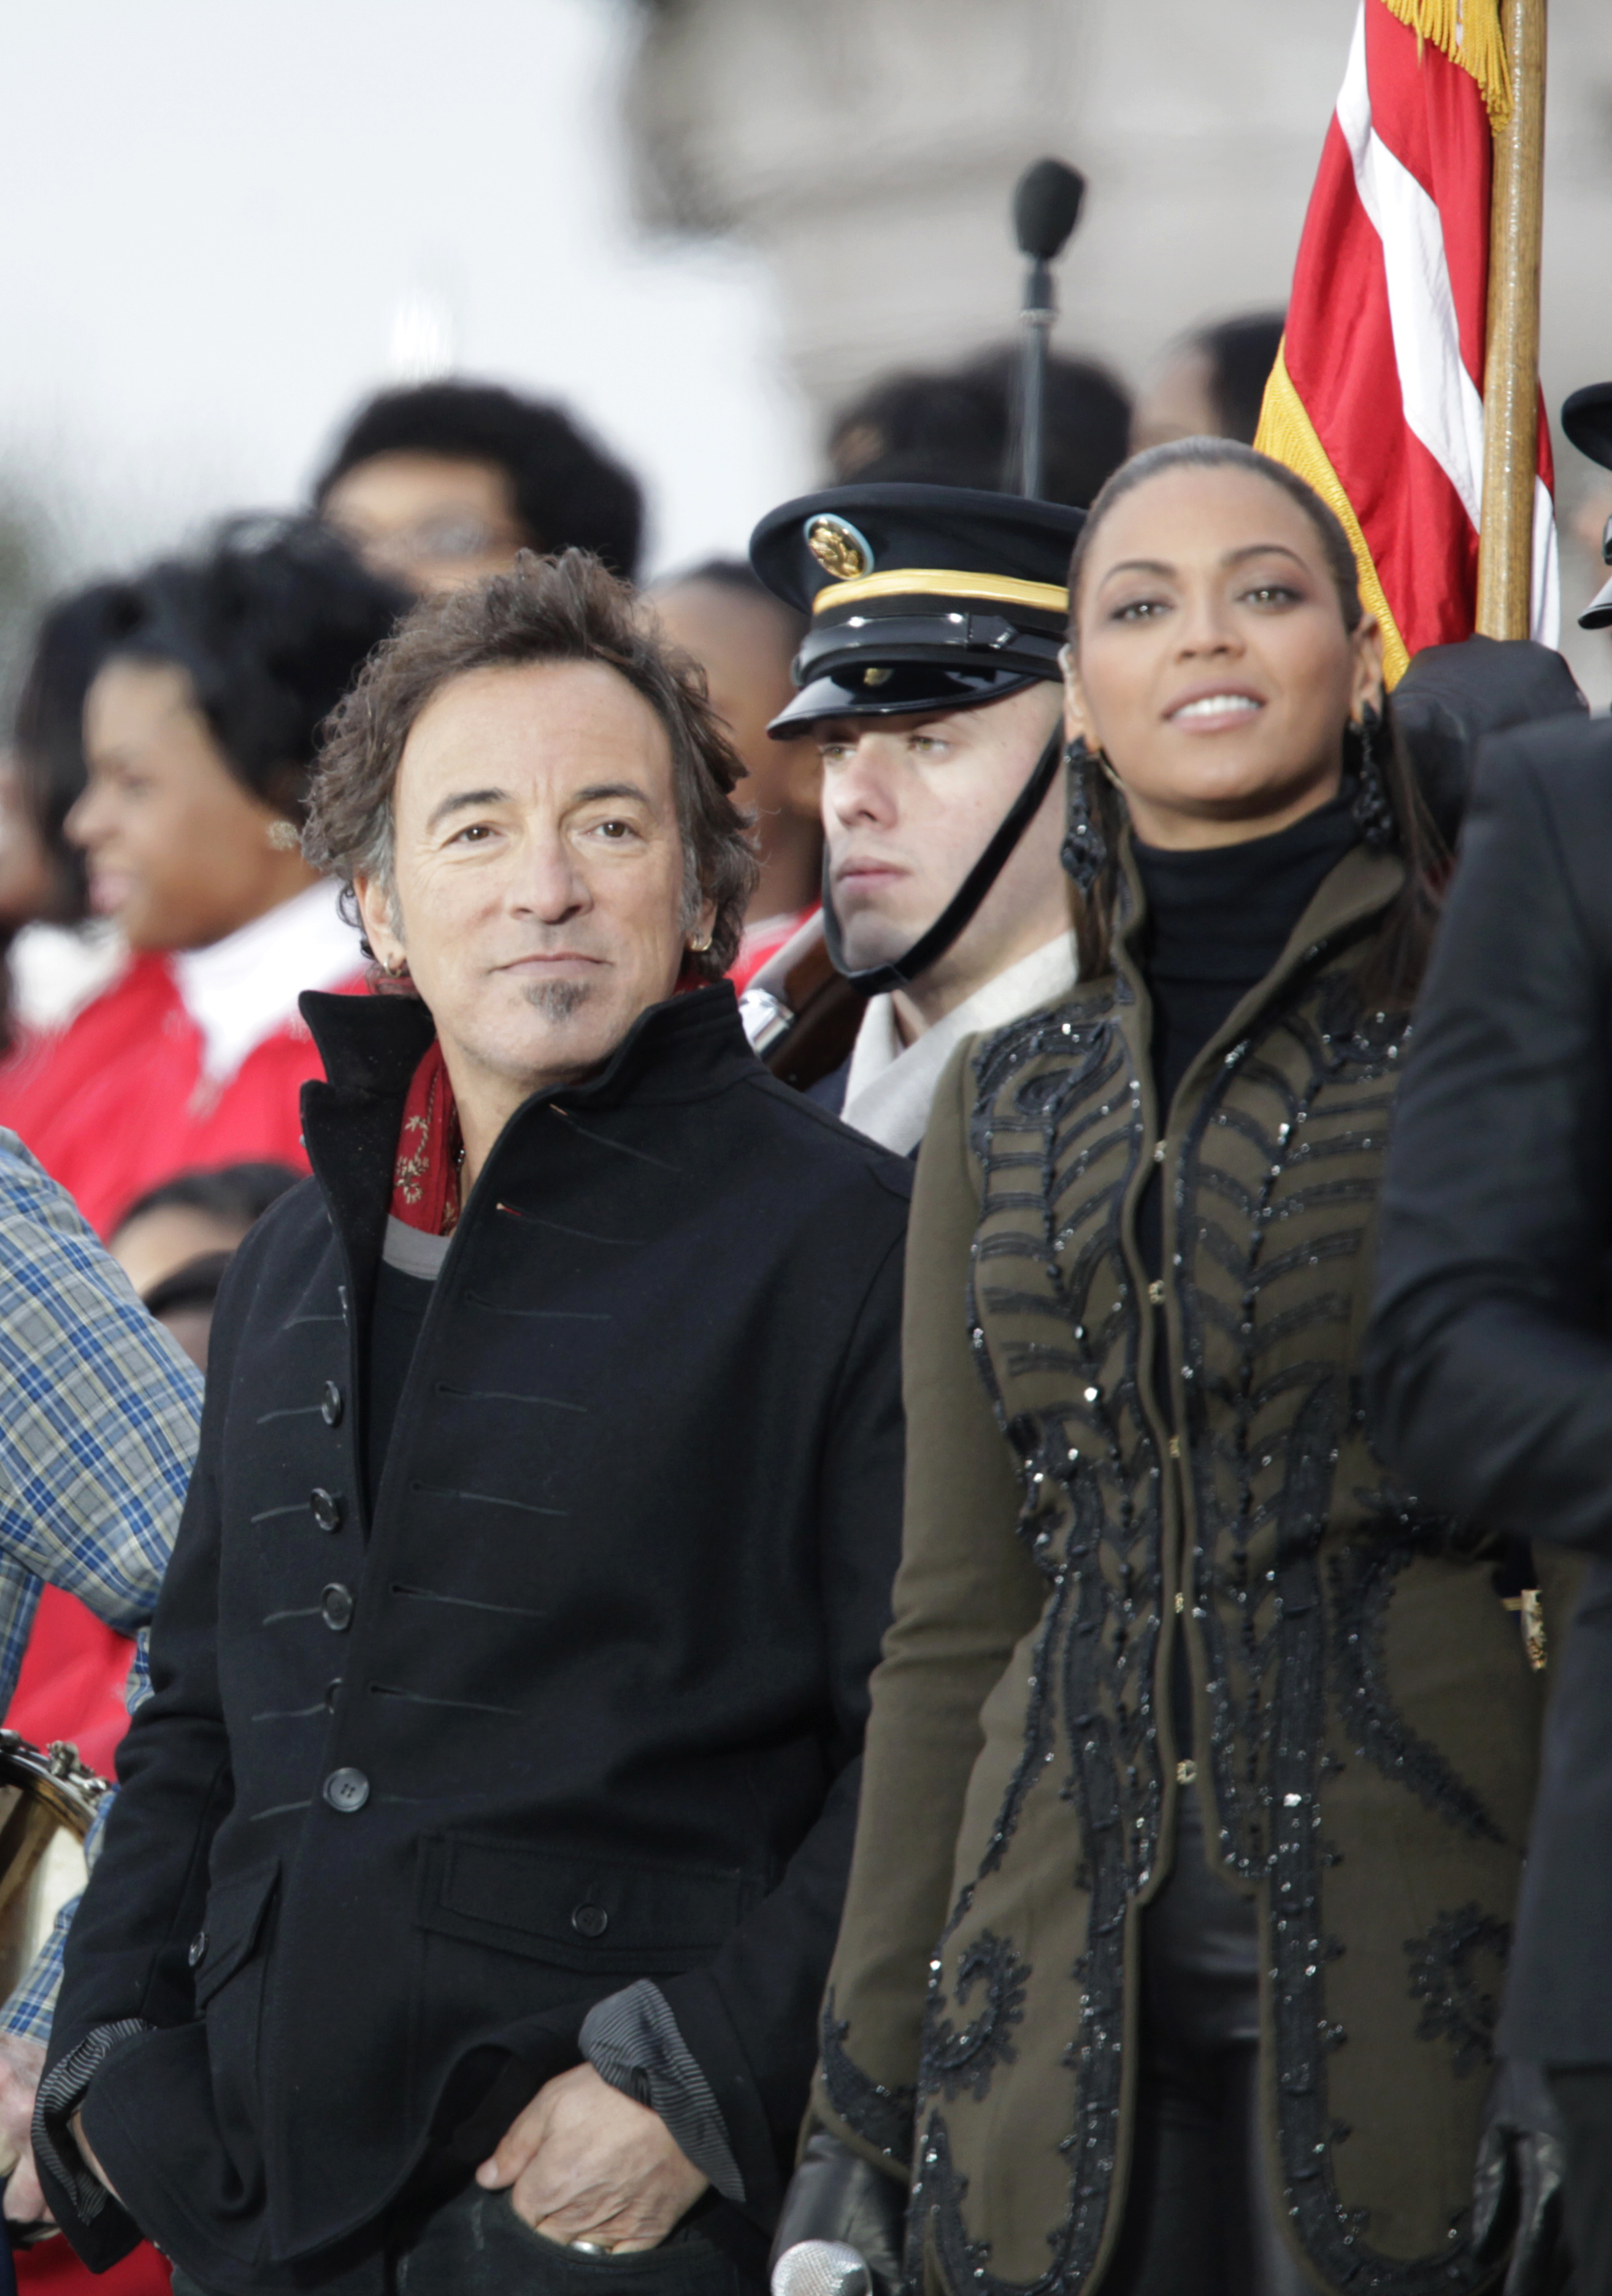 Bruce Springsteen and Beyonce attend We Are One: The Obama Inaugural Celebration at the Lincoln Memorial in Washington, D.C., on Jan. 18, 2009.